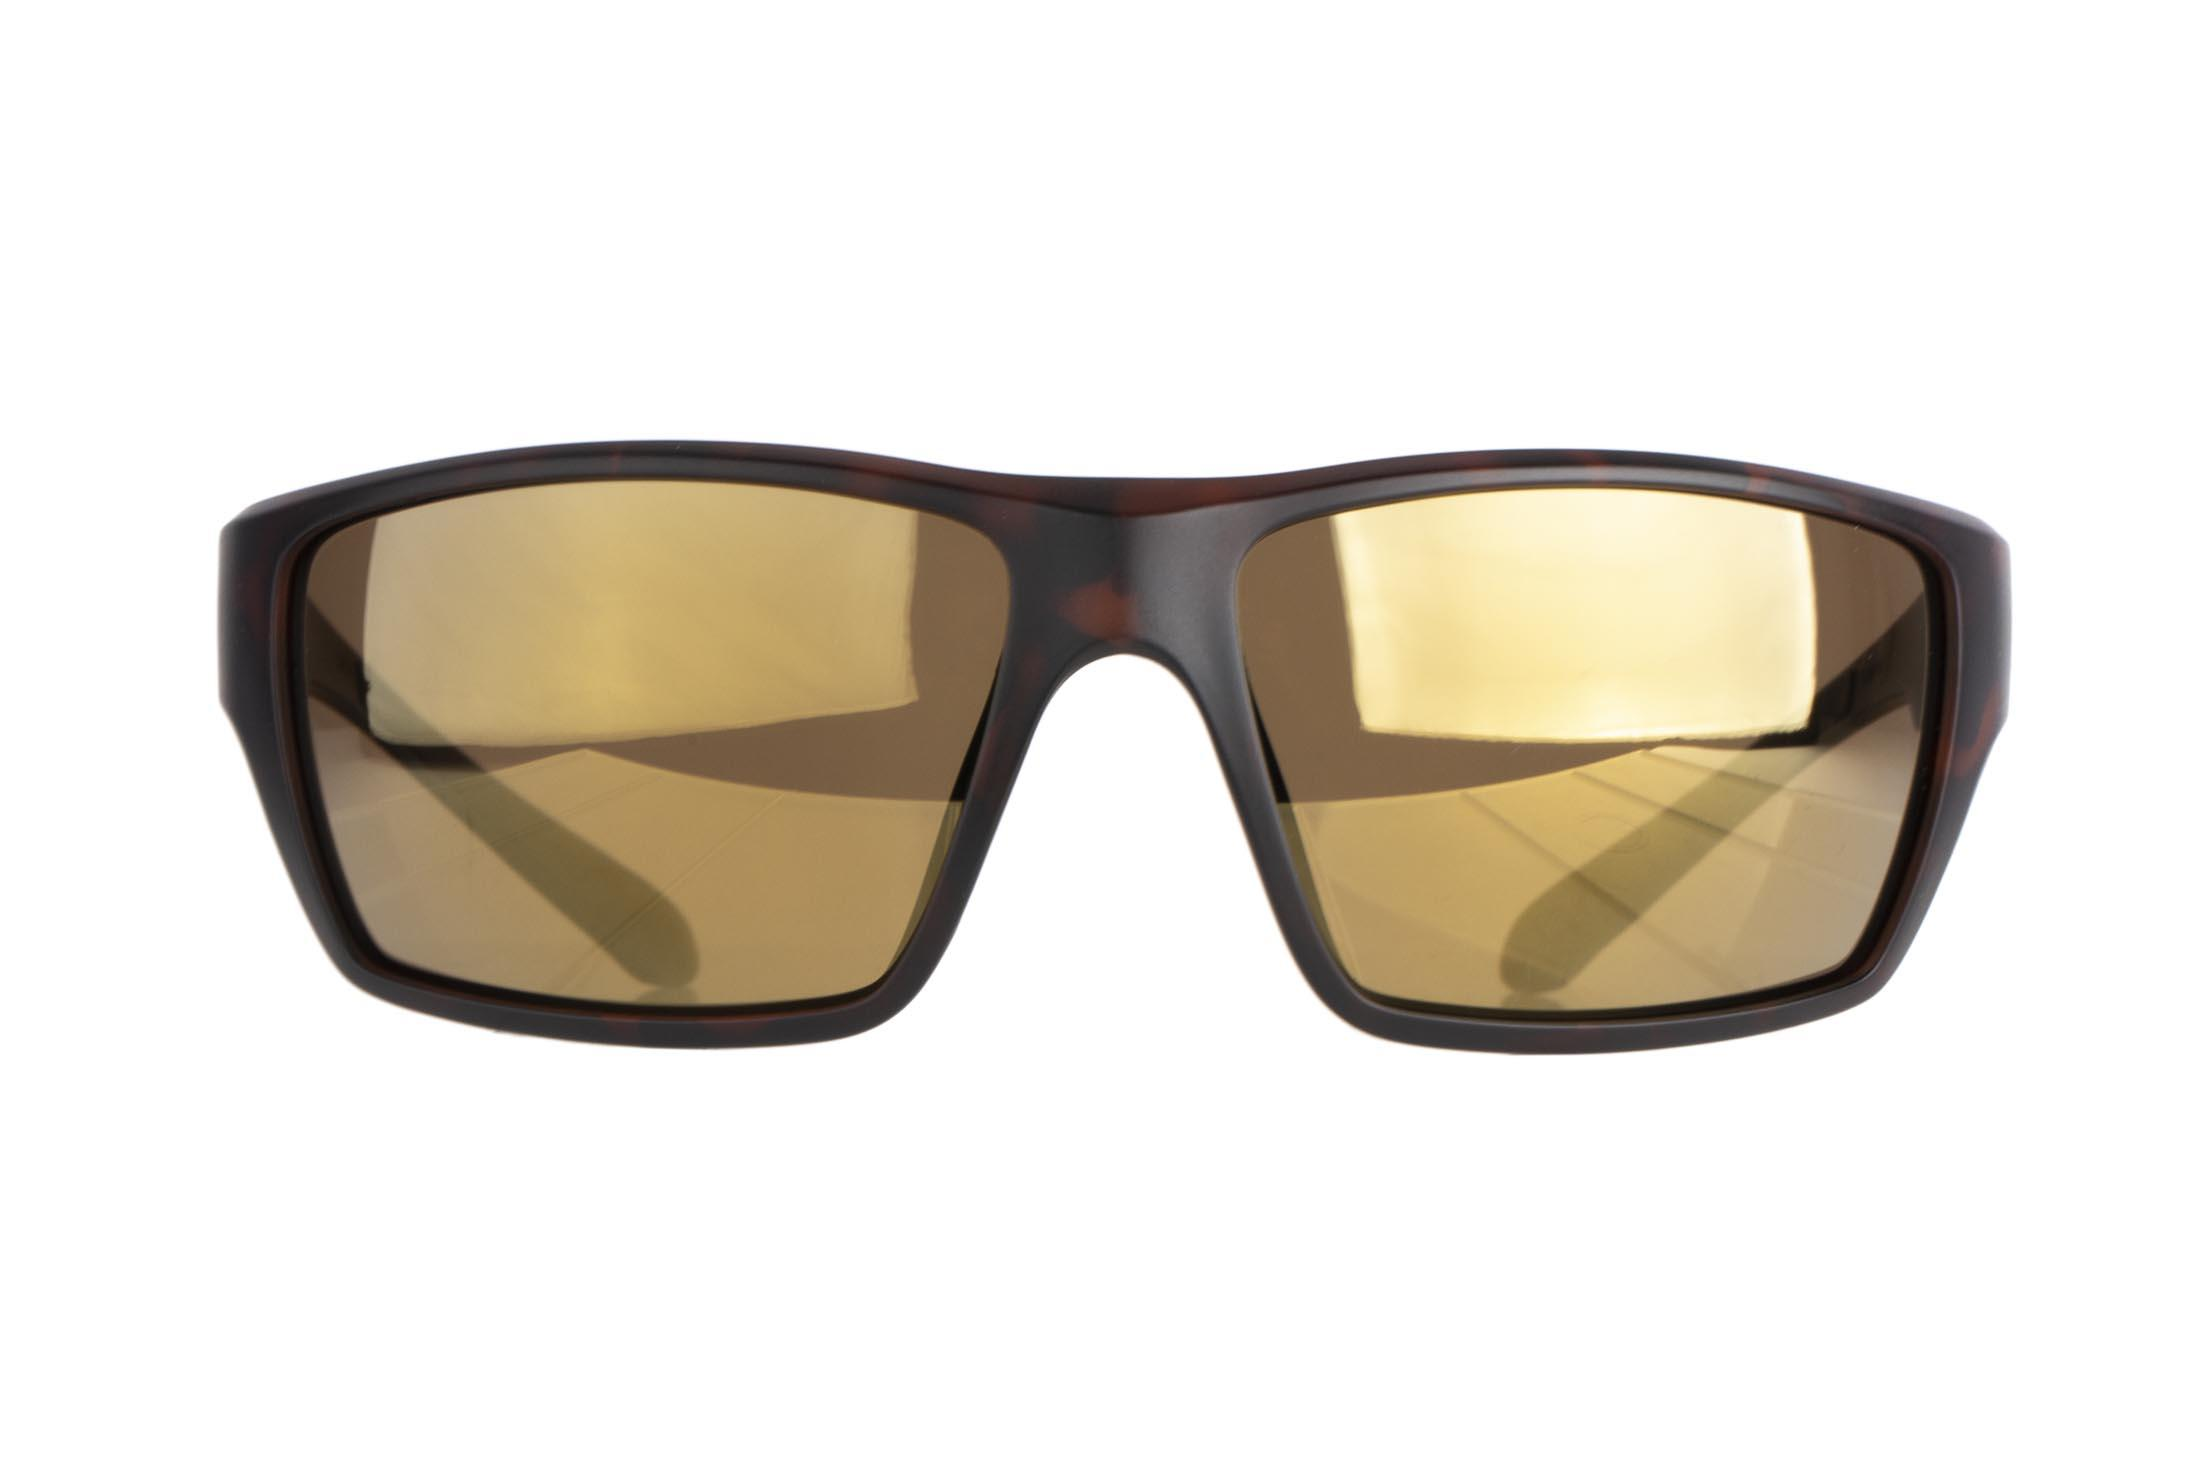 Magpul Terrain safety glasses tortoise frame and bronze/gold polarized lenses are made from TR90ZZ theromplastic for exceptional durability